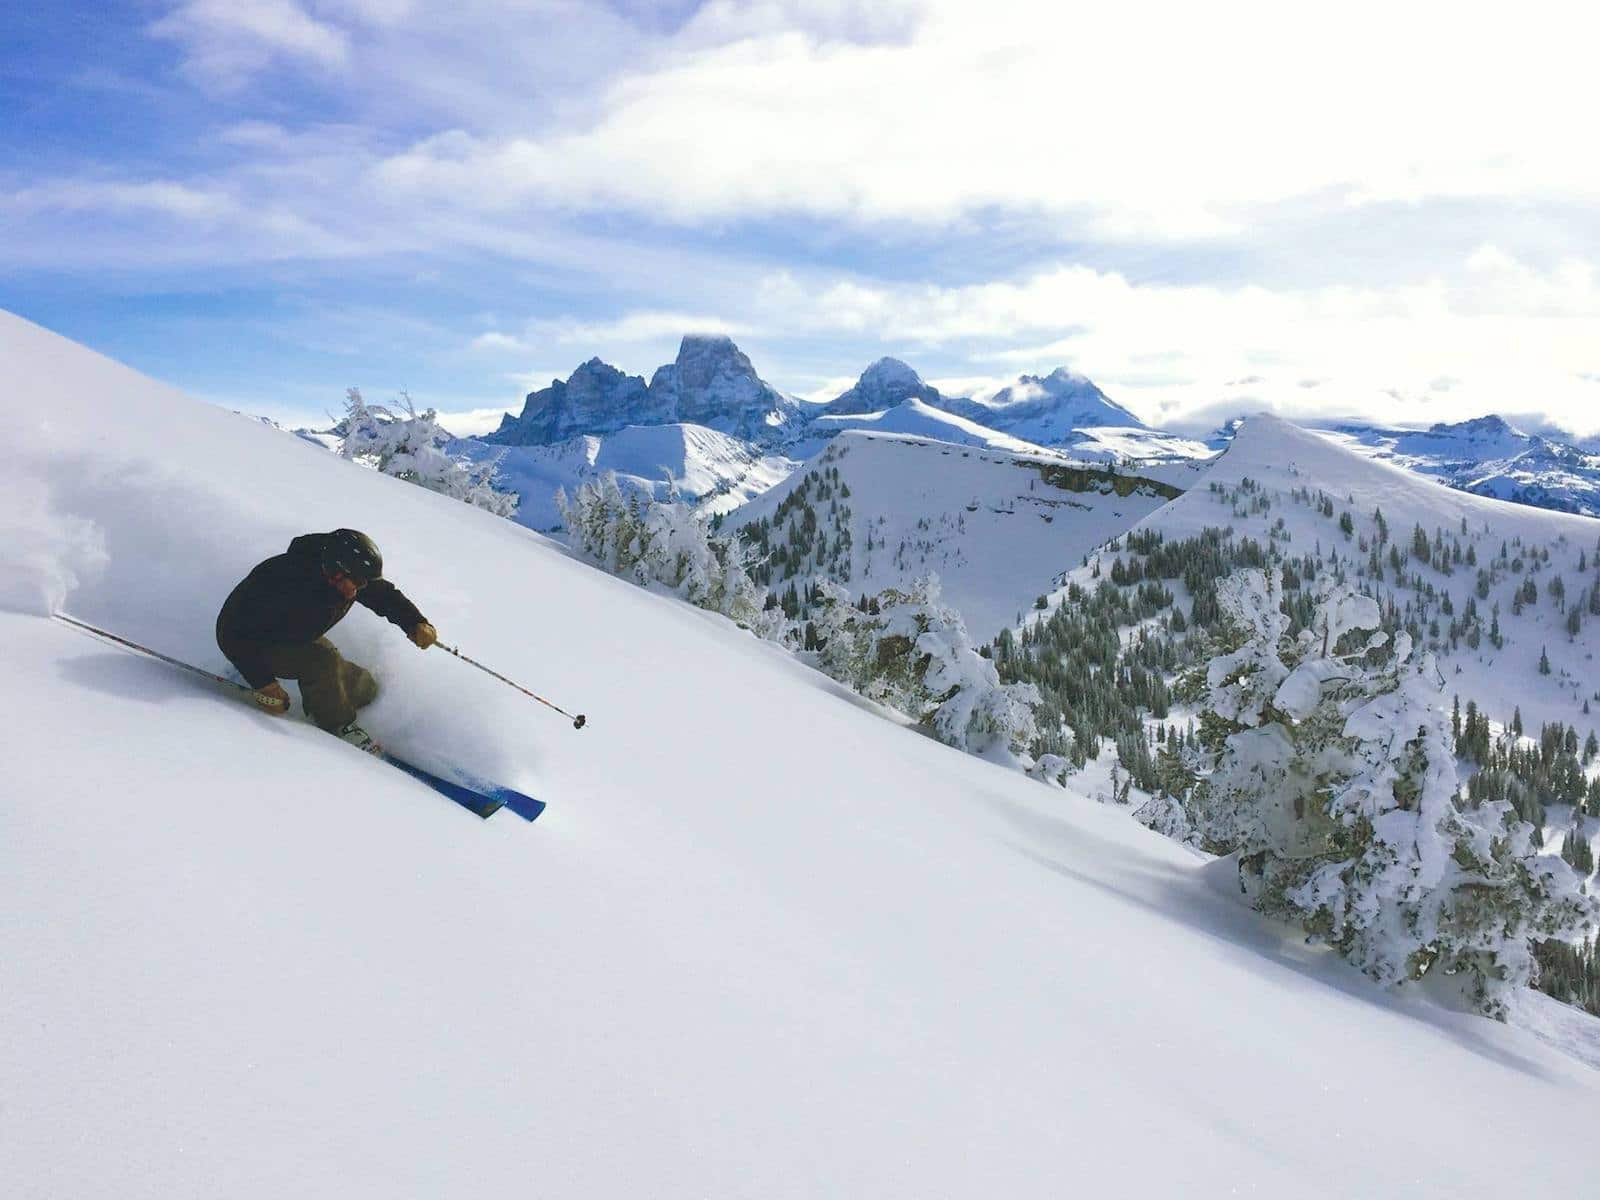 Image of a skier and stunning mountainous views at Grand Targhee Resort in Wyoming